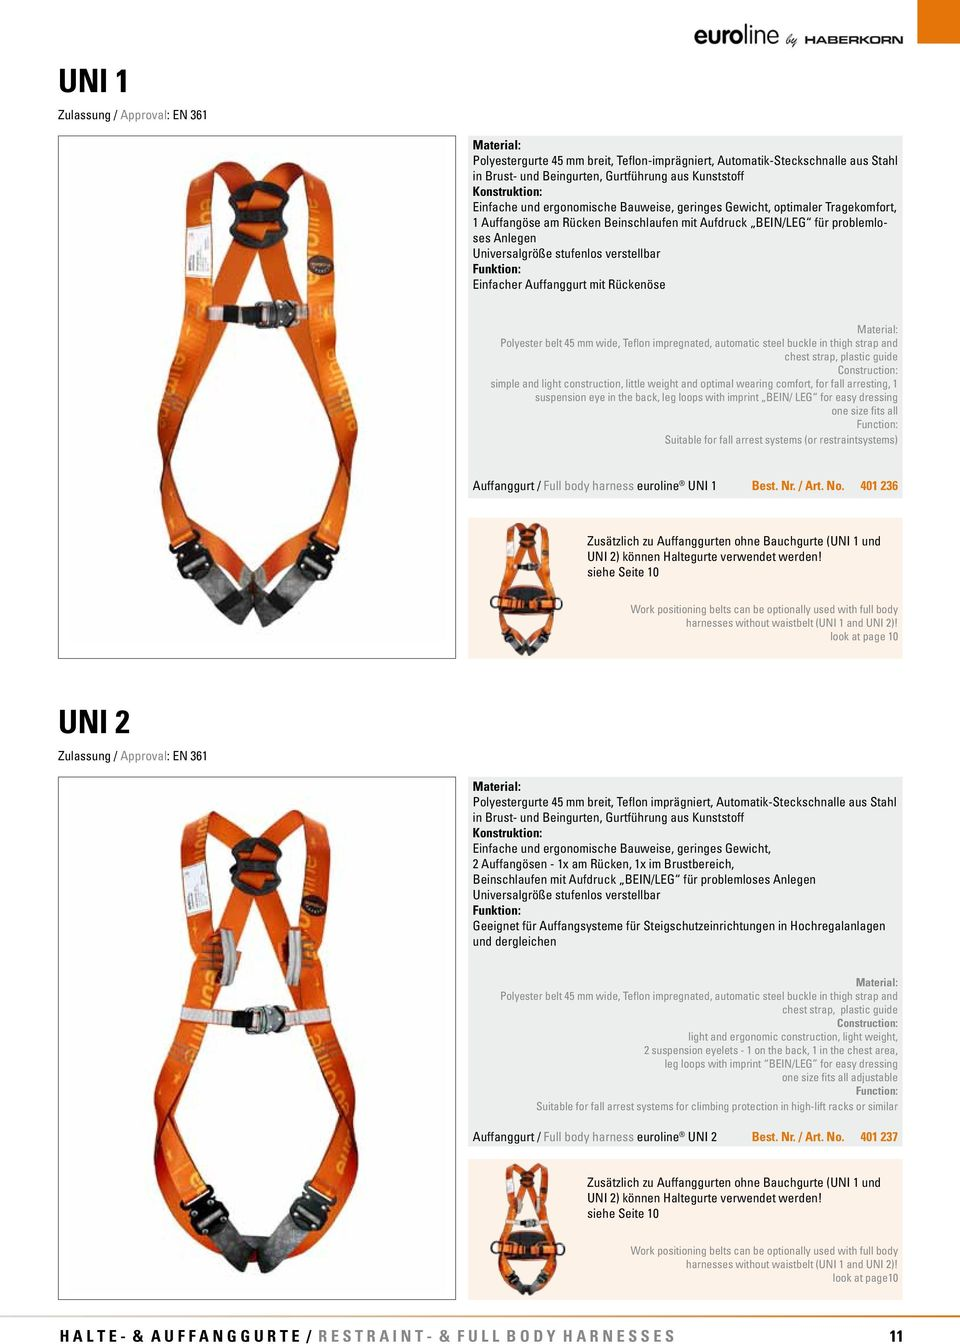 Einfacher Auffanggurt mit Rückenöse Polyester belt 45 mm wide, Teflon impregnated, automatic steel buckle in thigh strap and chest strap, plastic guide Construction: simple and light construction,